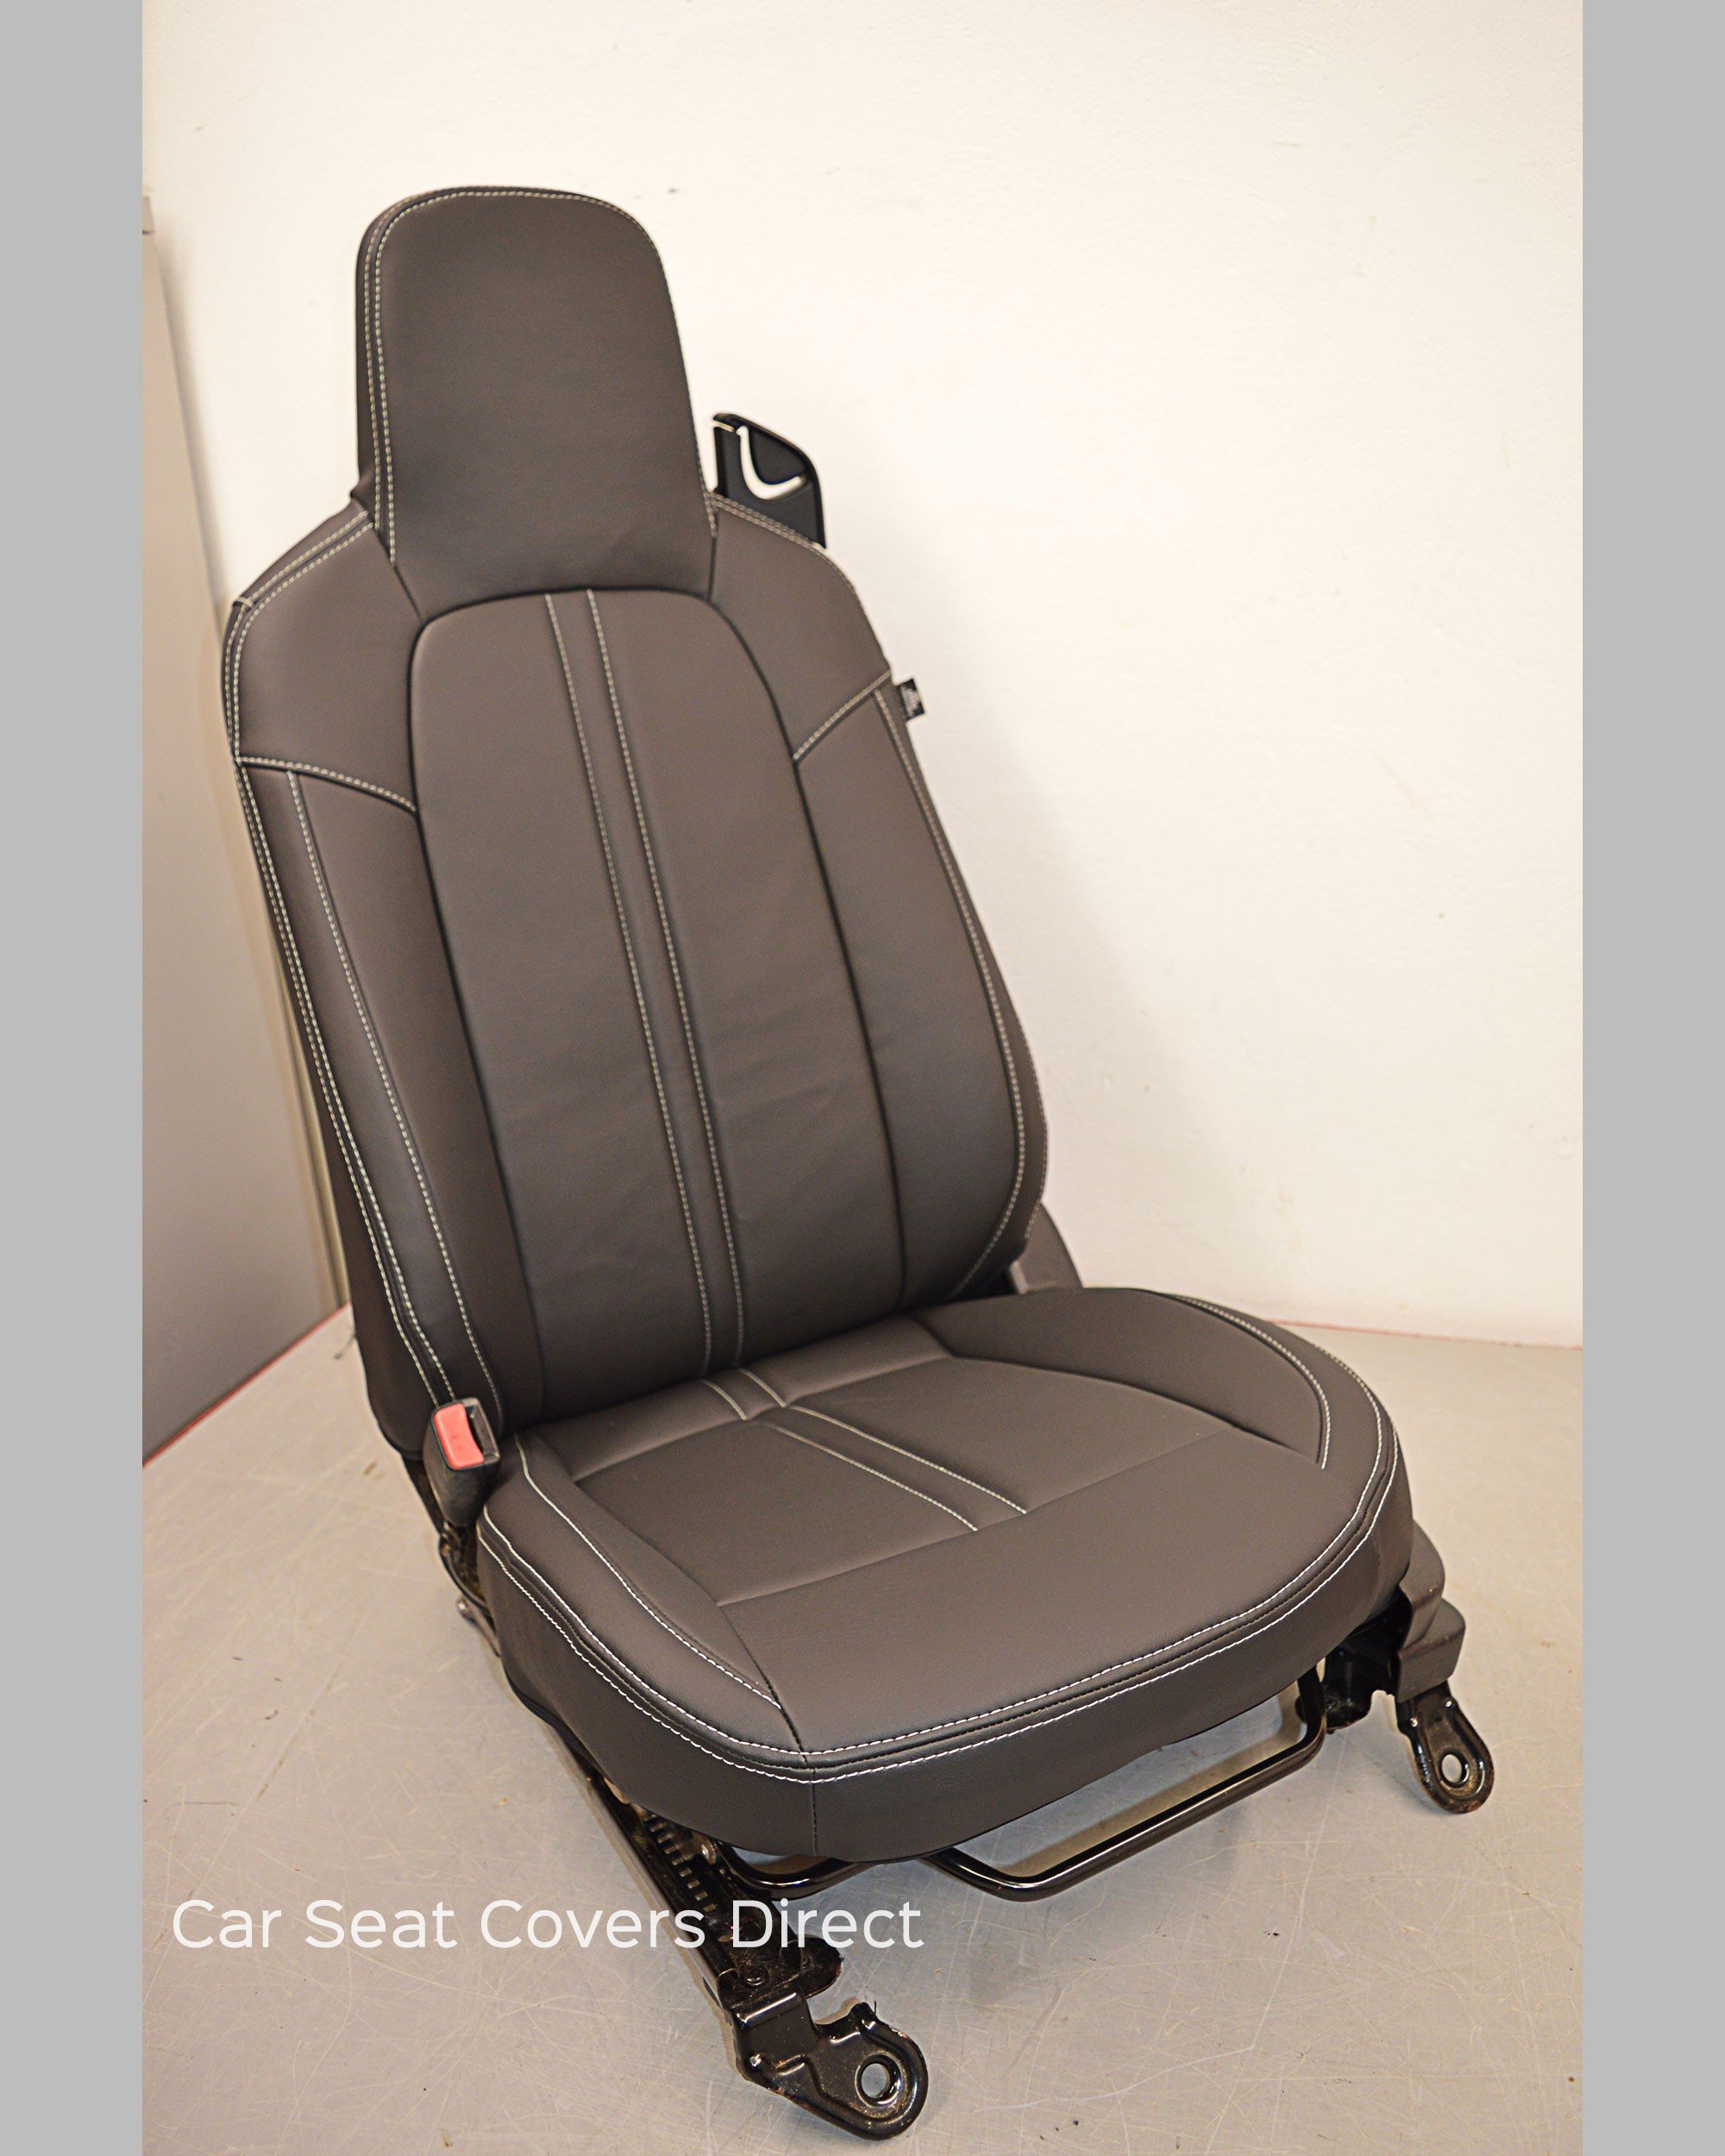 Mazda Miata MX5 Tailored Seat Covers